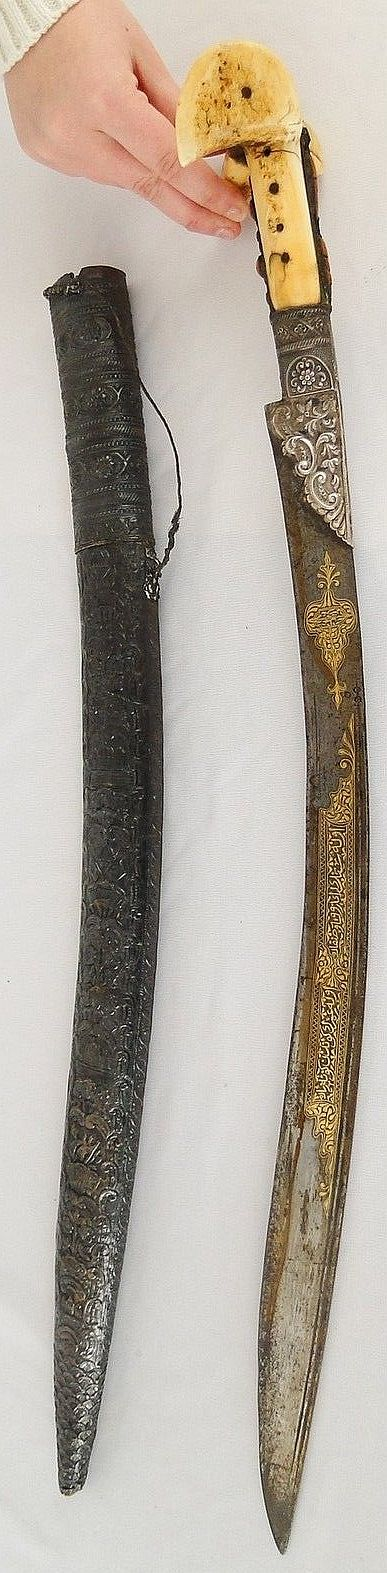 "Ottoman yatagan / yataghan, 19th century, the blade has silver engraved mounts and is inlaid in gold and appears to be signed within a cartouche like form on the gold inlay, bone handle, tooled scabbard appears to be silver - silver/alloy over a thin wood two piece core, 29 3/4"" long including scabbard."